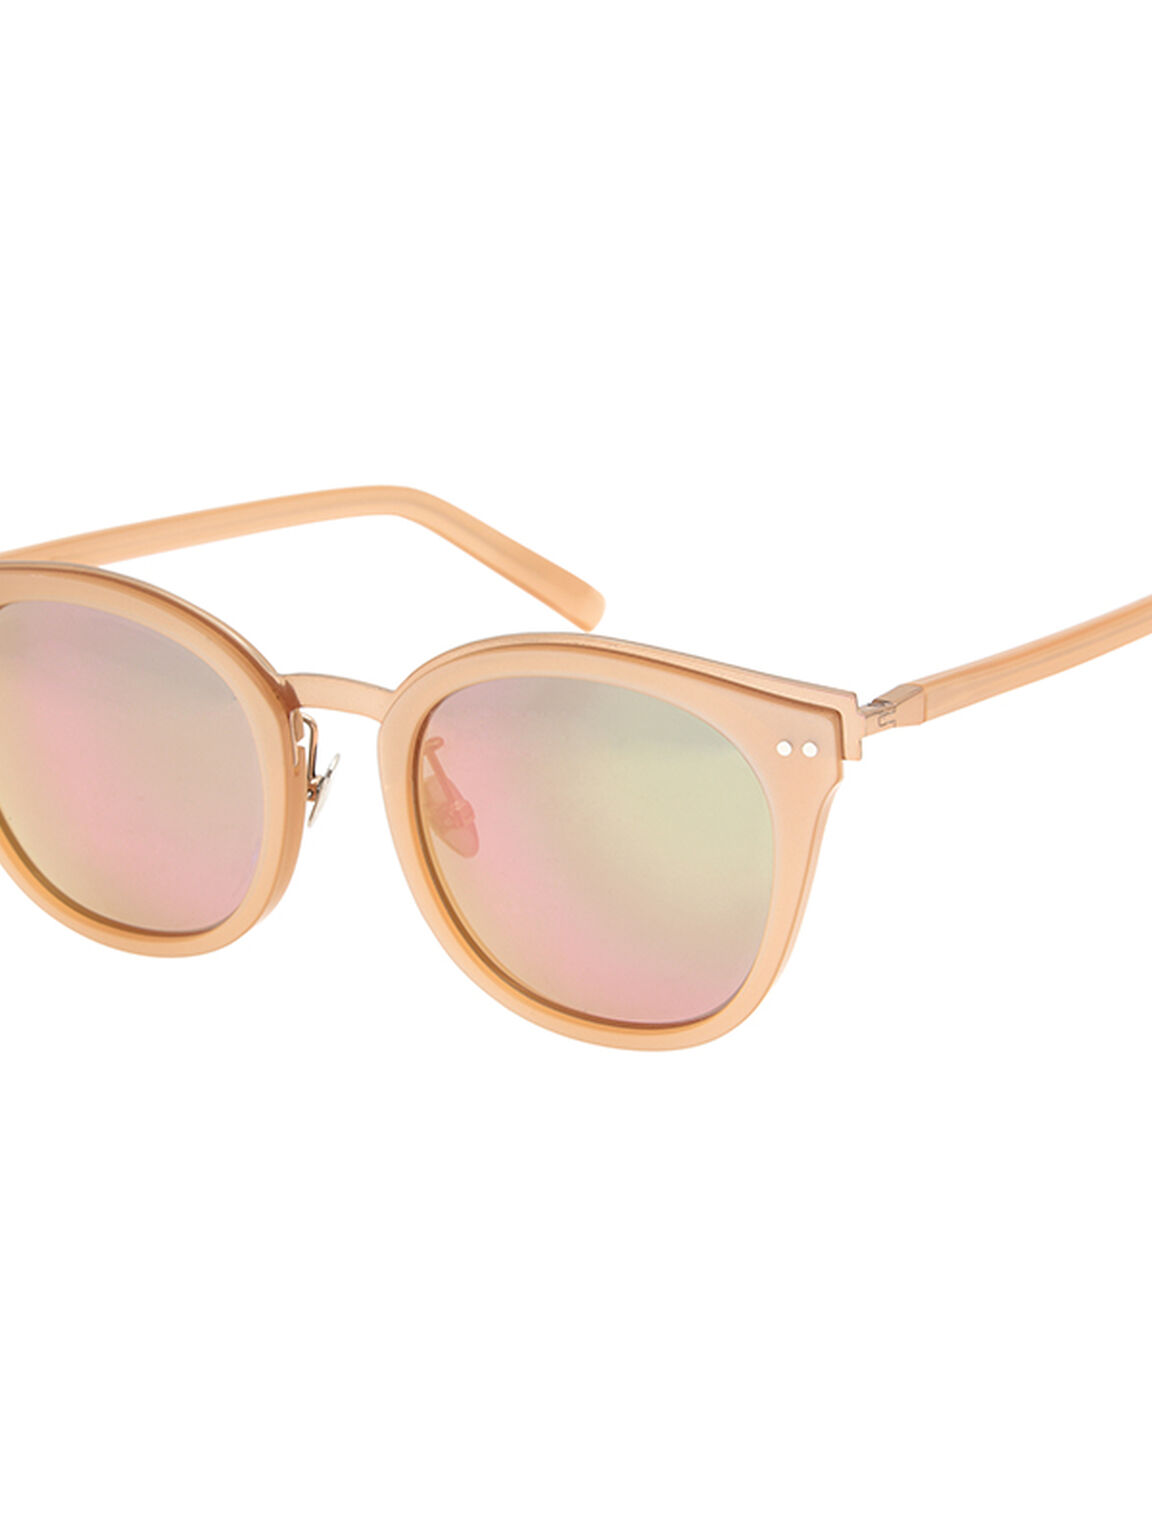 Round Cat Eye Eyewear, Pink, hi-res